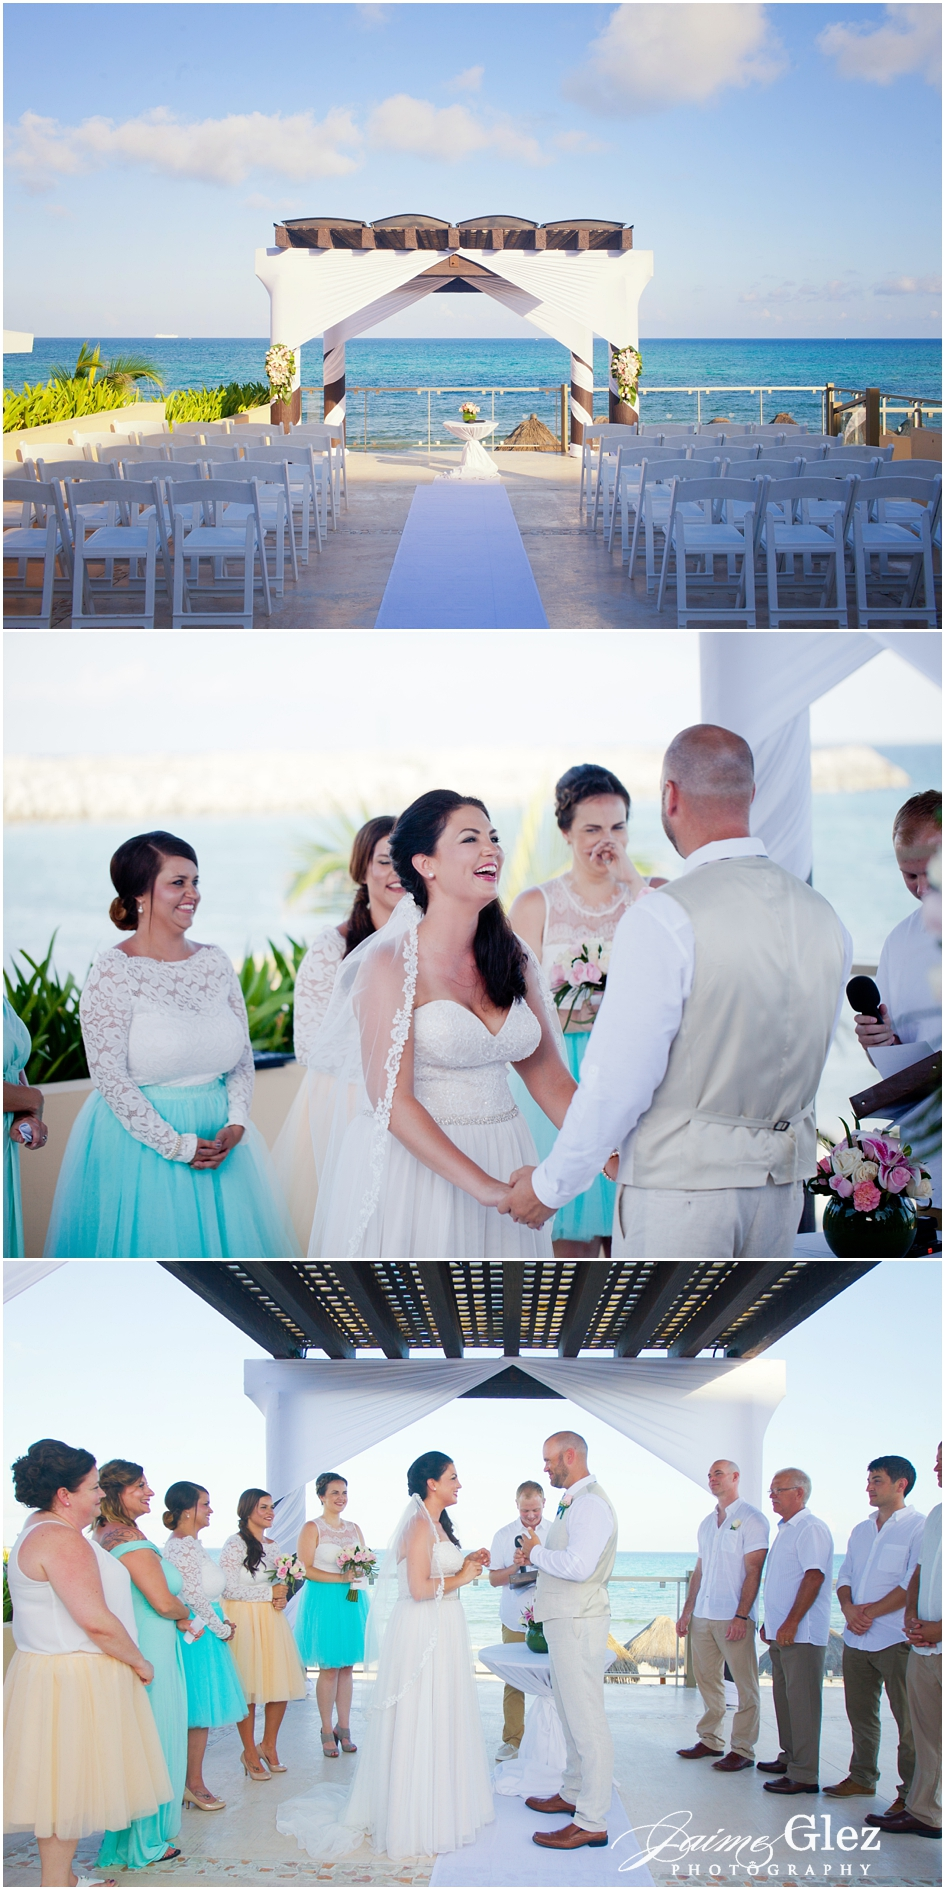 Seaside wedding ceremony filled by romanticism and fun.